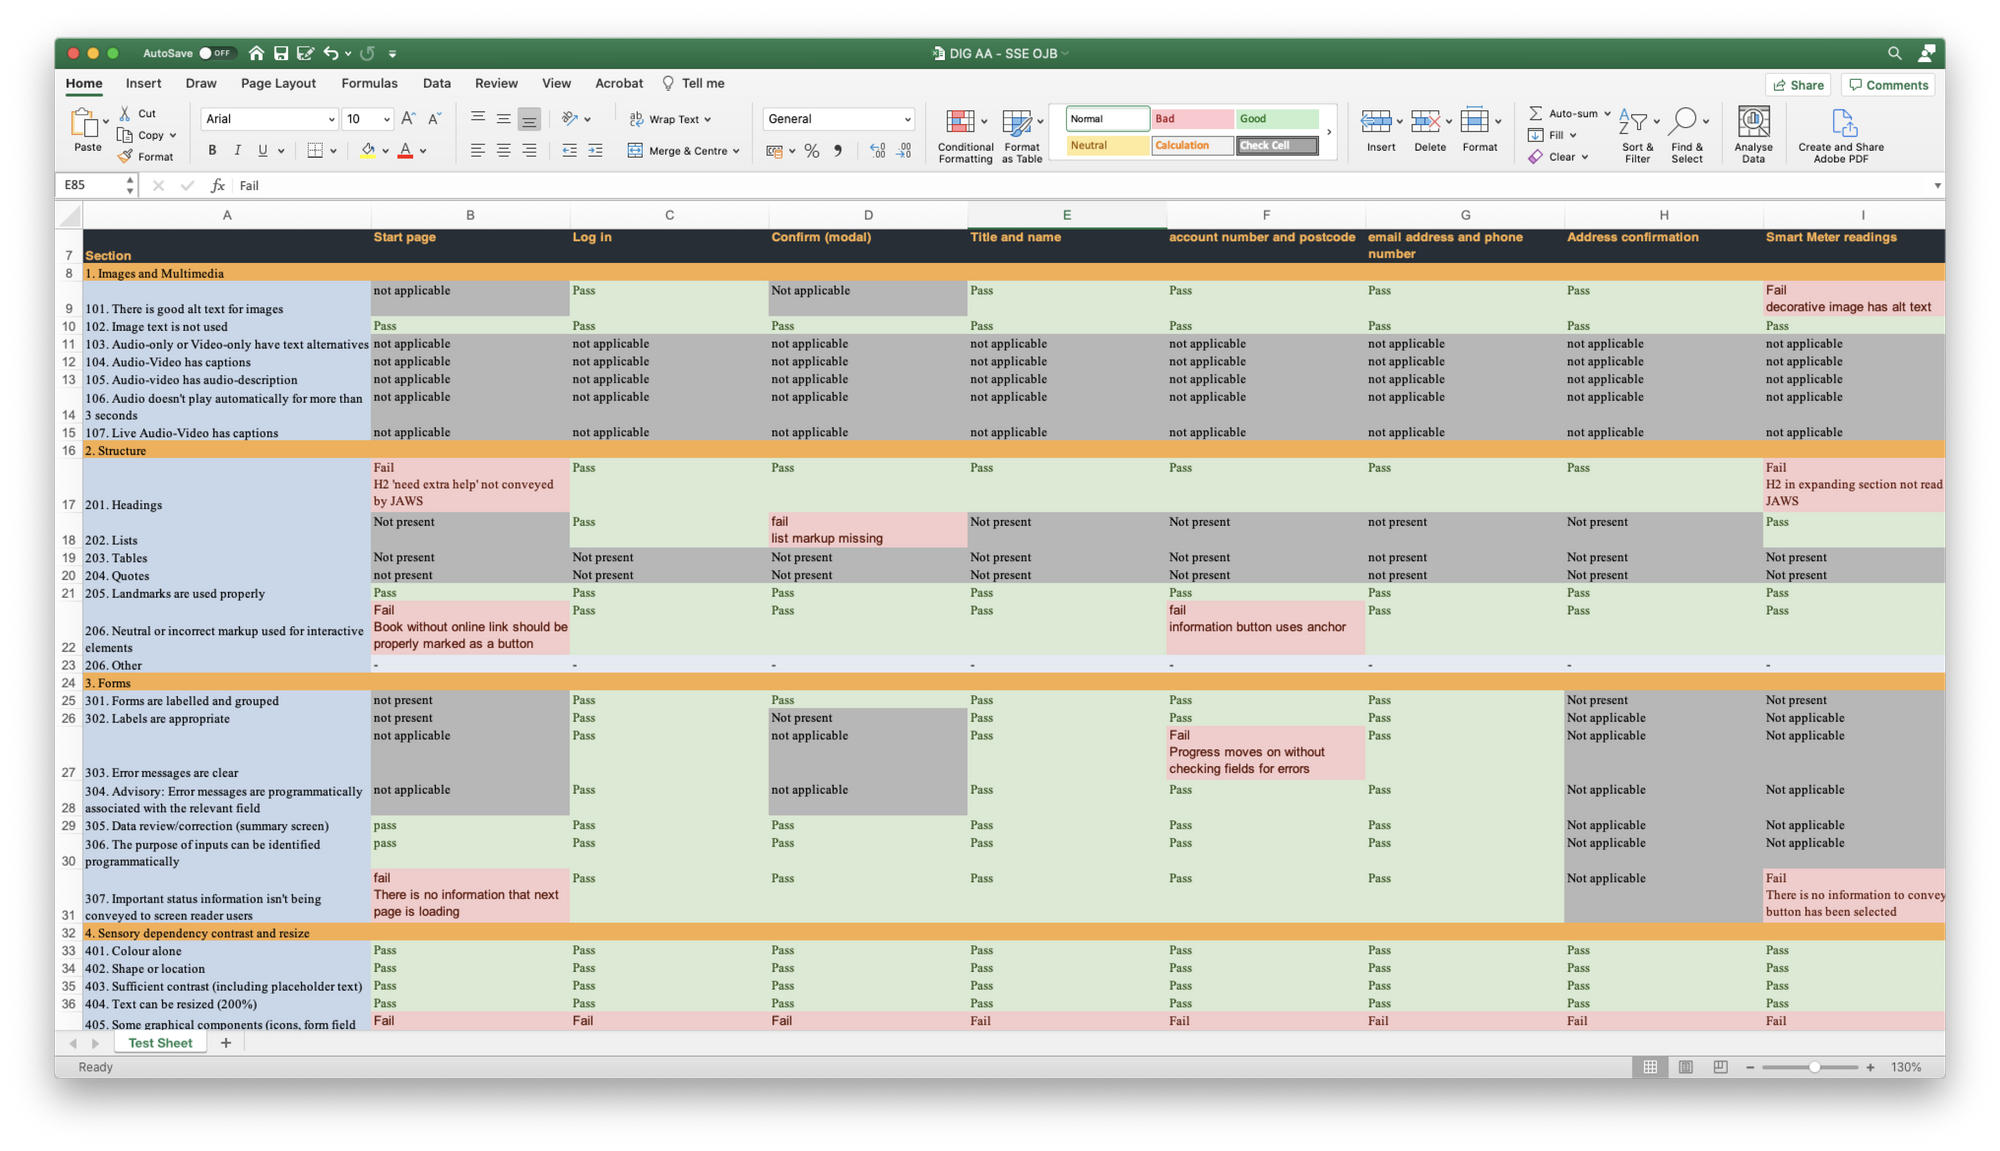 A matrix of screens along the top, and guidelines listed down the left hand side; colour coded to illustrate which screens failed accessibility guidelines and which screens passed.